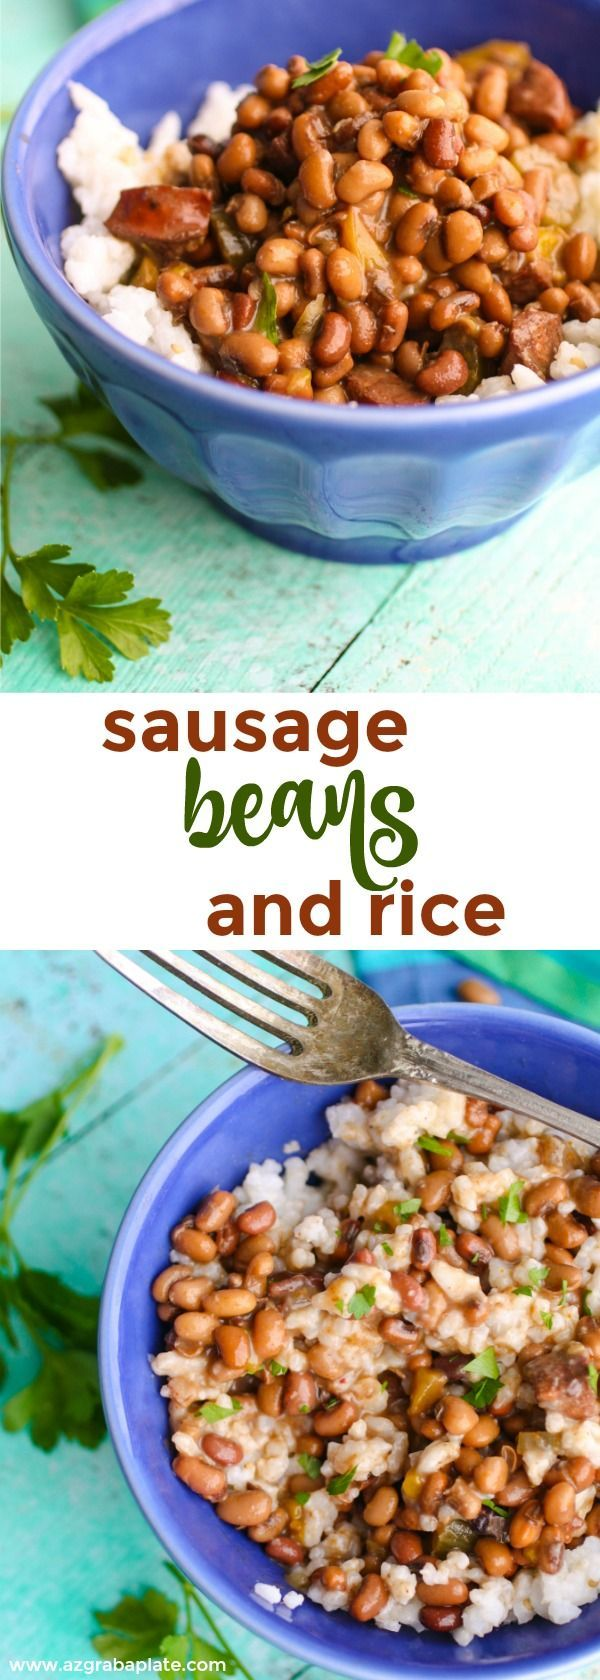 Sausage, Beans, and Rice is a Southern-inspired, hearty and flavorful dish. Now that the cool weather is here, it's perfect!